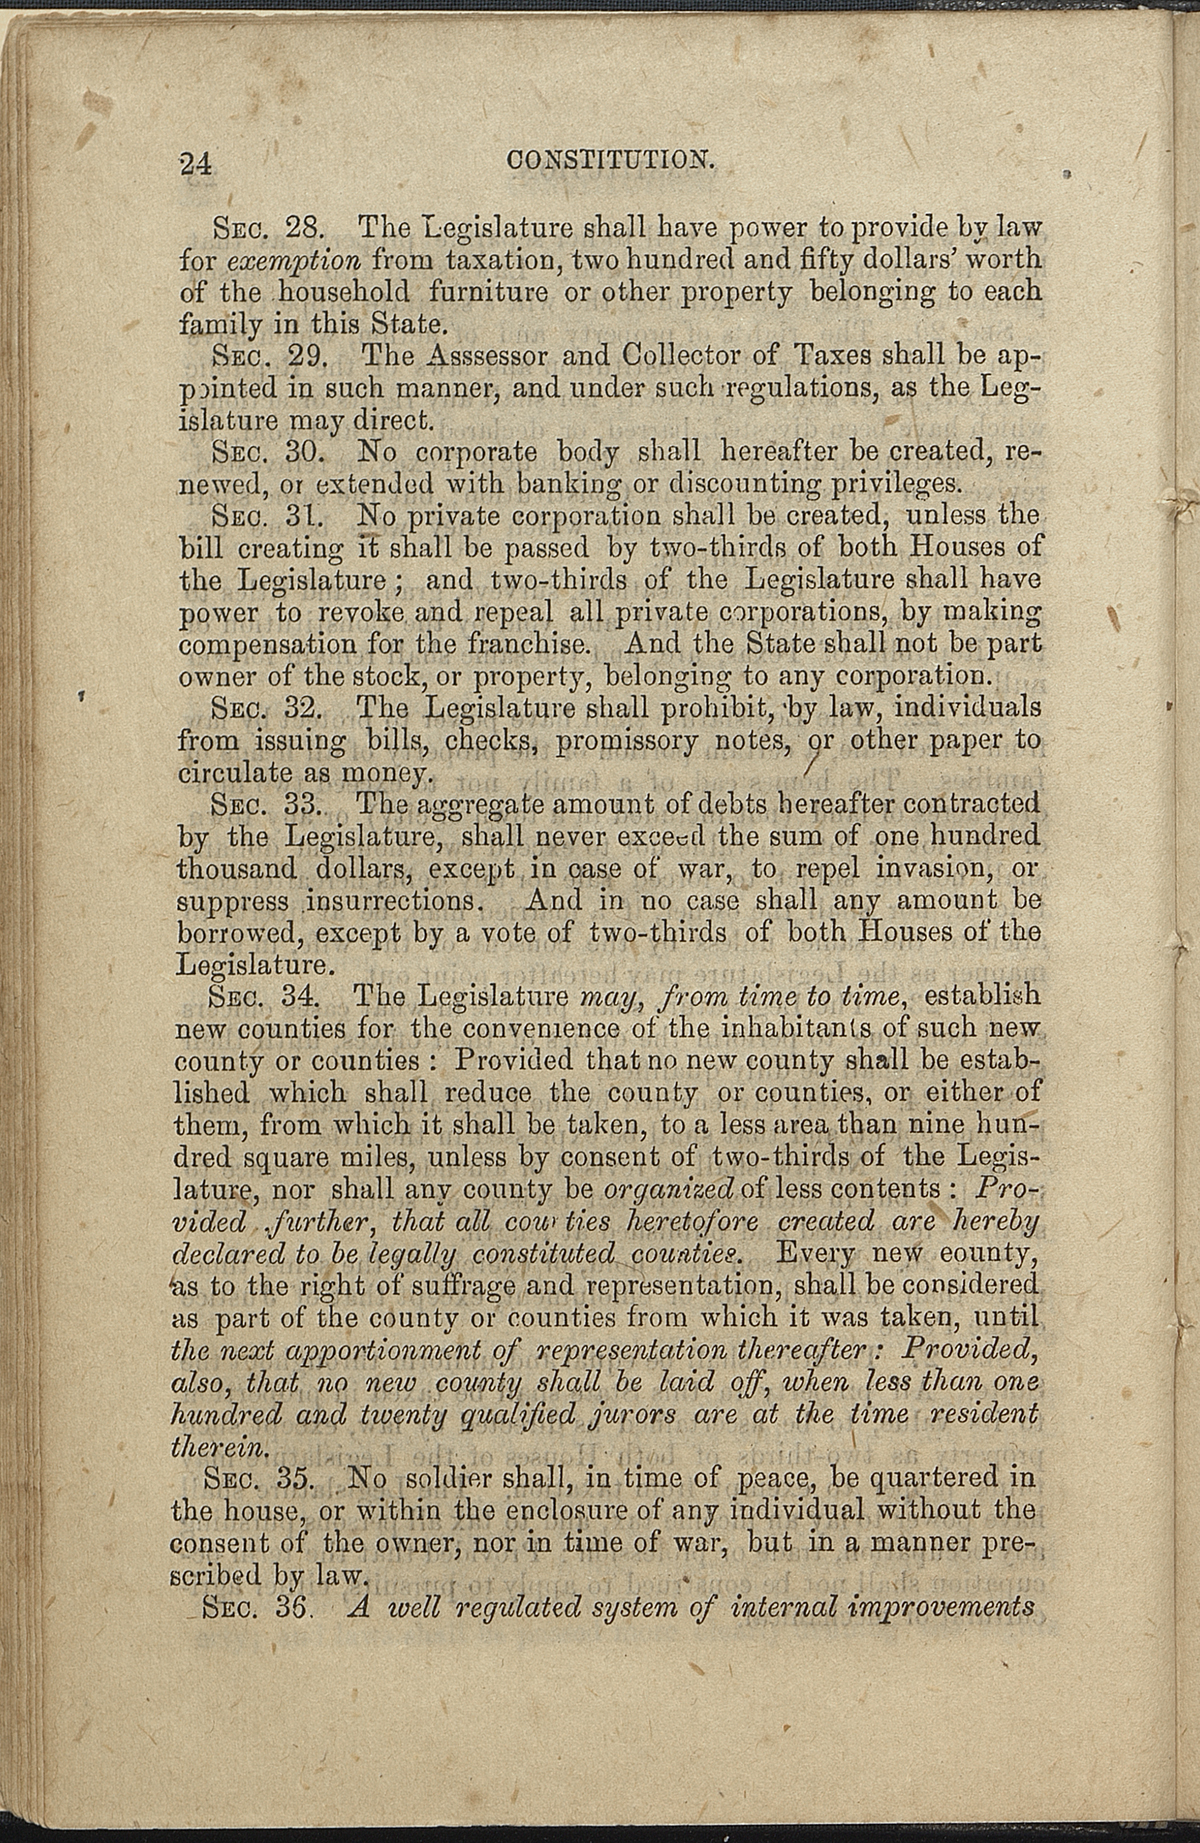 Article VII, Sections 28-36